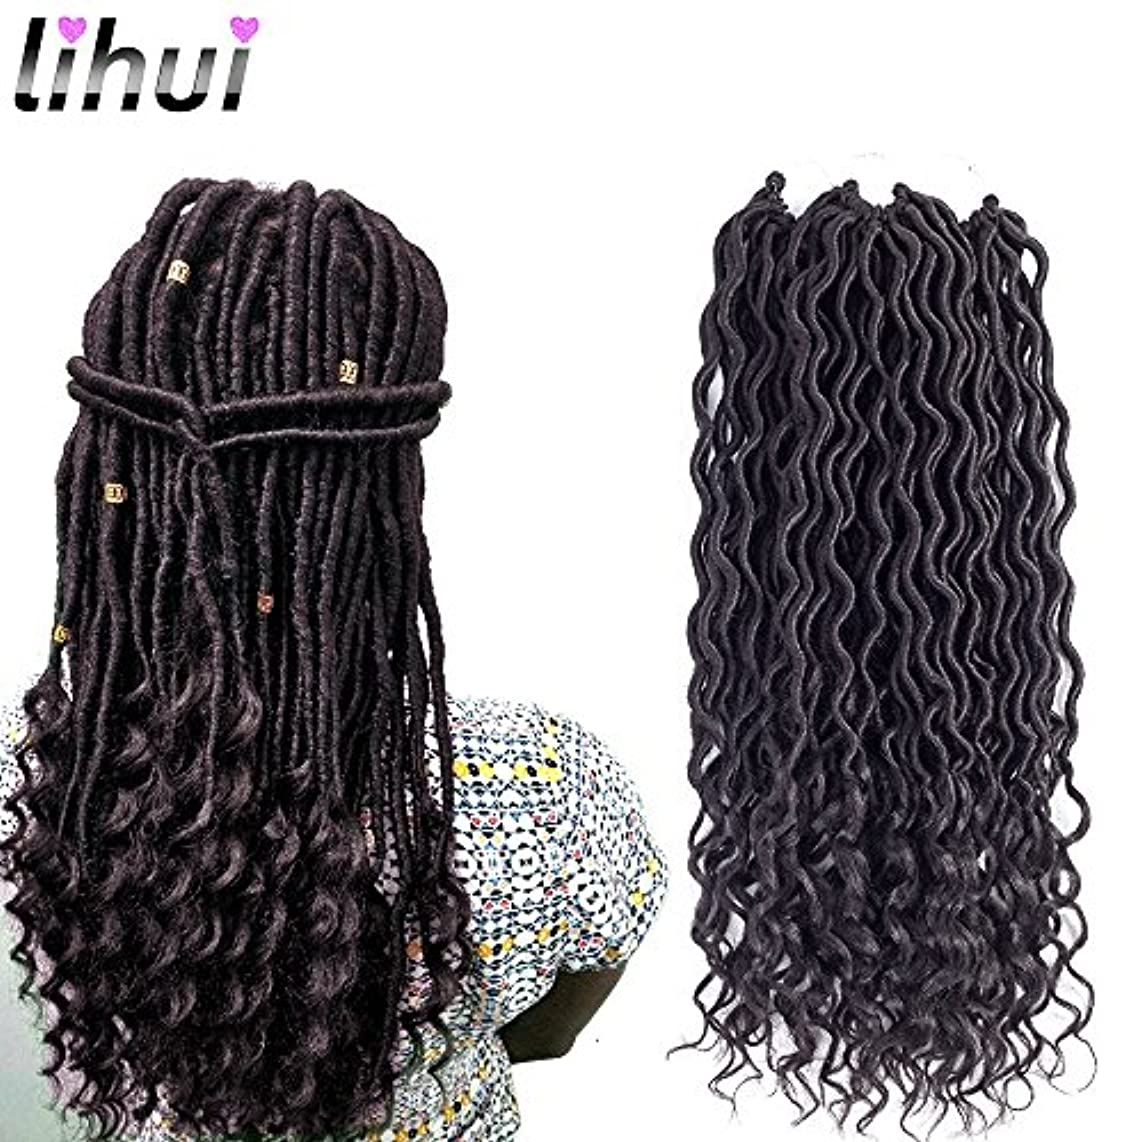 Lihui 6pcs/lot Goddess Locs Crochet Hair Wavy Faux Locs with Curly Ends Synthetic Braiding Hair Extension (14inch(6-PACKS), 2)